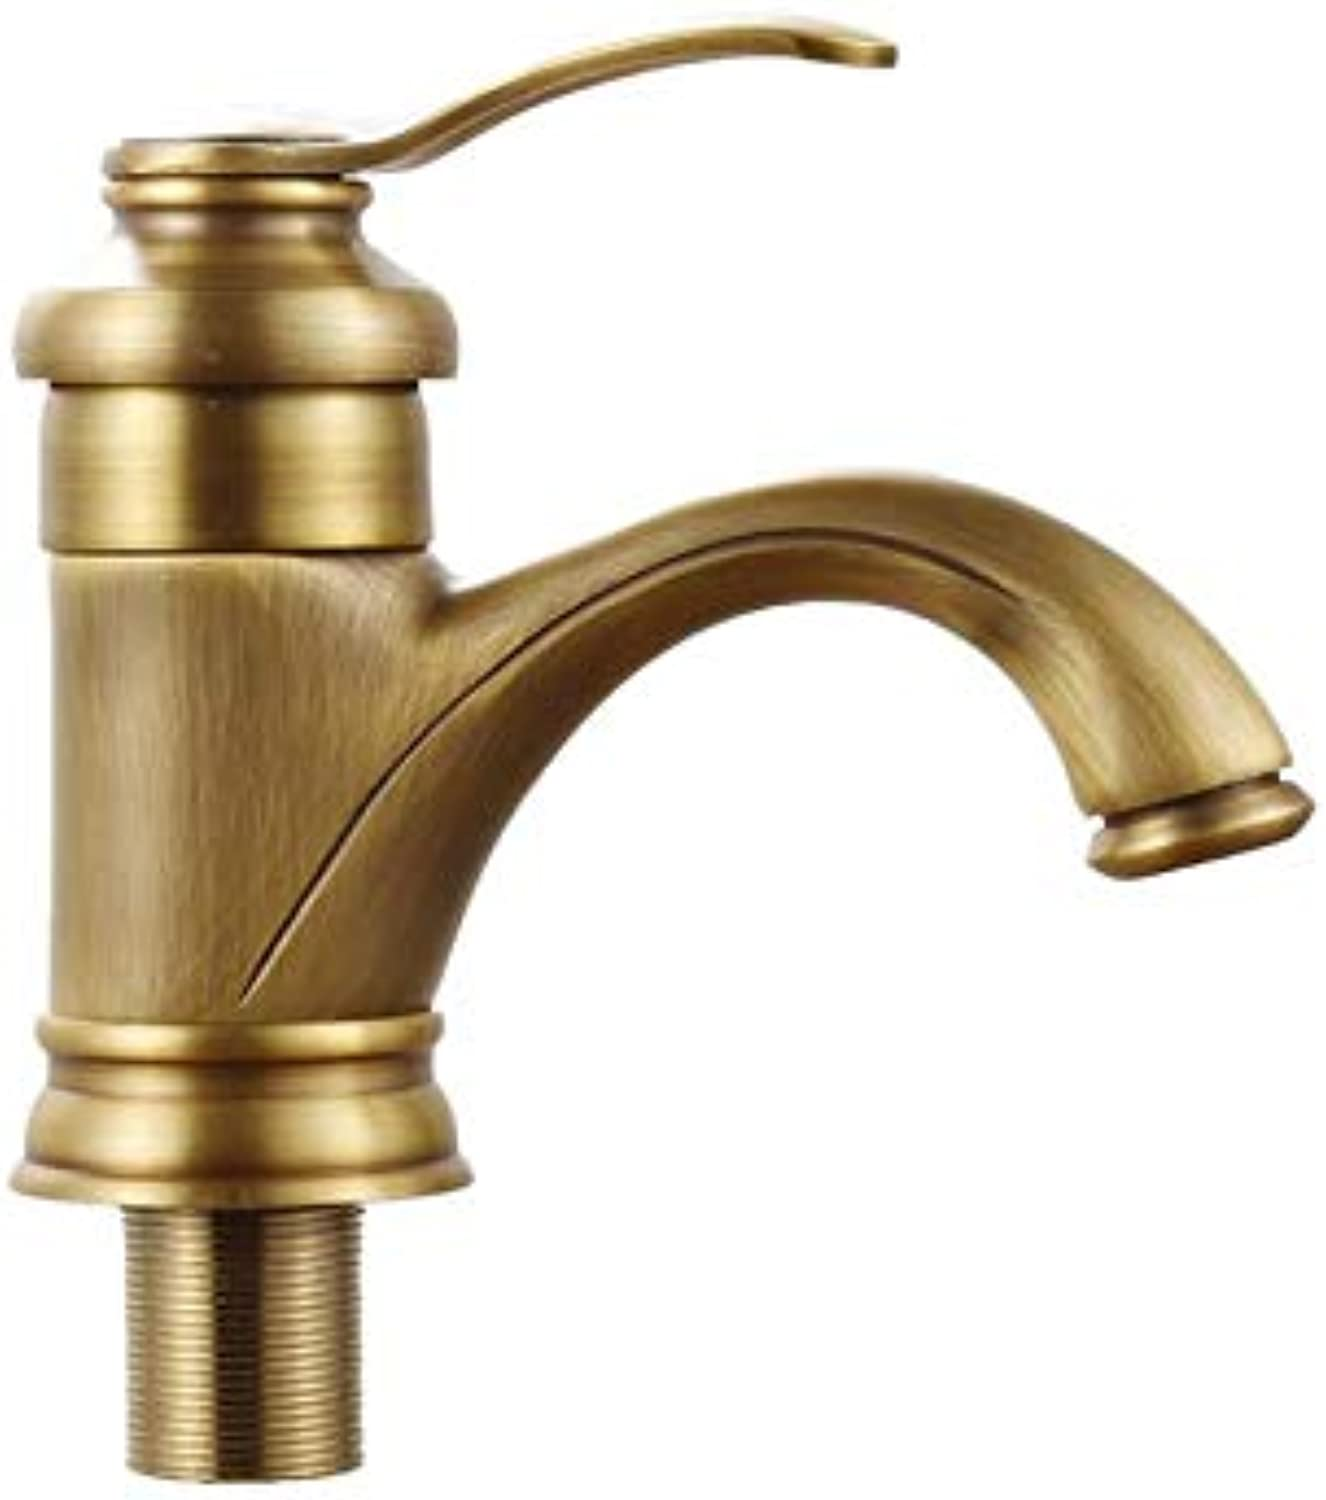 Pull Out The Pull Down Stainless Steeleuropean Style All Copper Antique Faucet Basin Basin Washbasin Faucet Basin Bathroom Hot and Cold Faucet